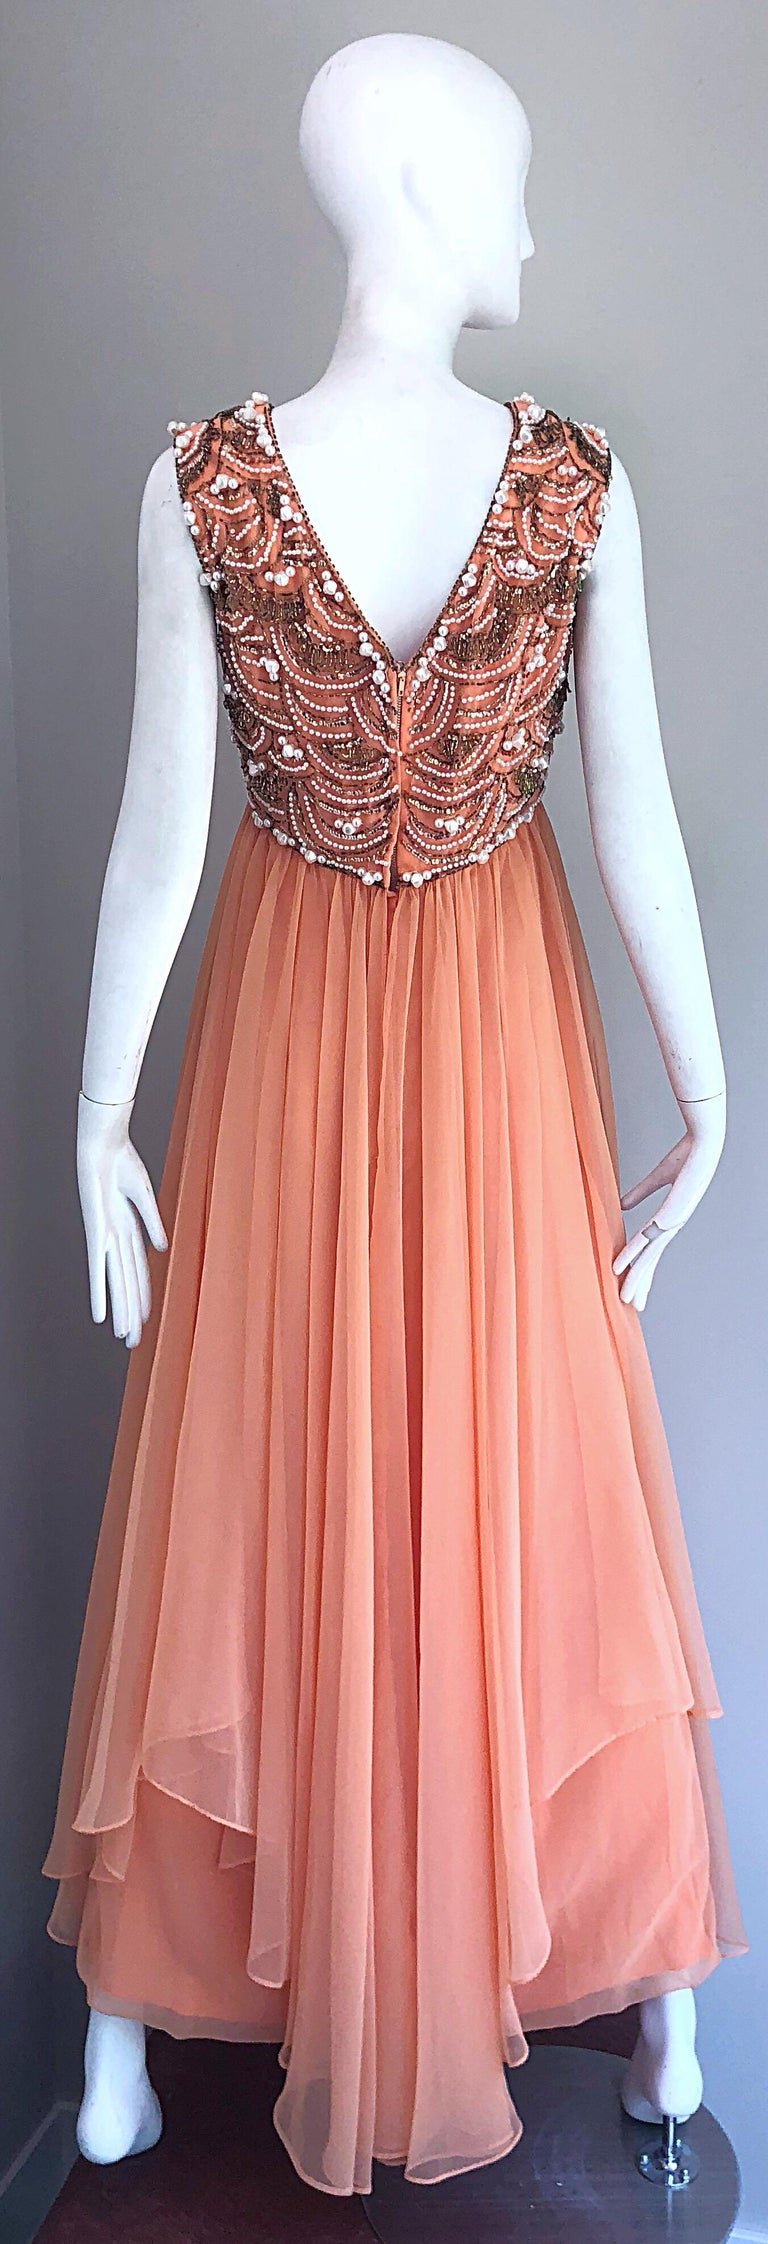 1960s Isabell Gerhart Sherbet Coral Demi Couture Beaded Chiffon 60s Gown Dress For Sale 7